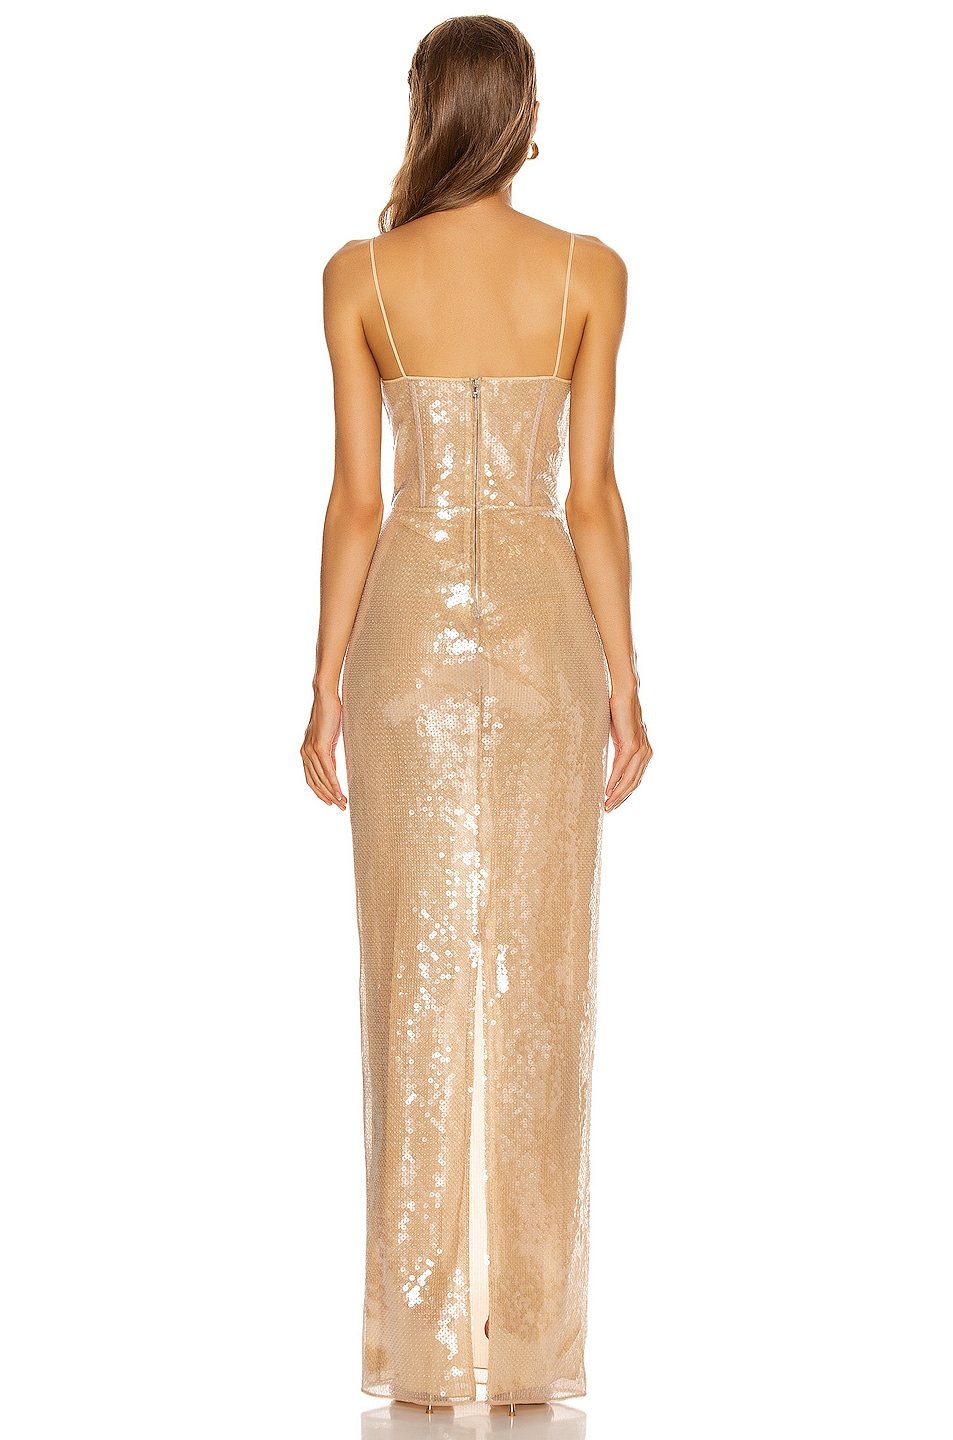 Image 3 of David Koma Sequins Bra Detail Gown in Beige